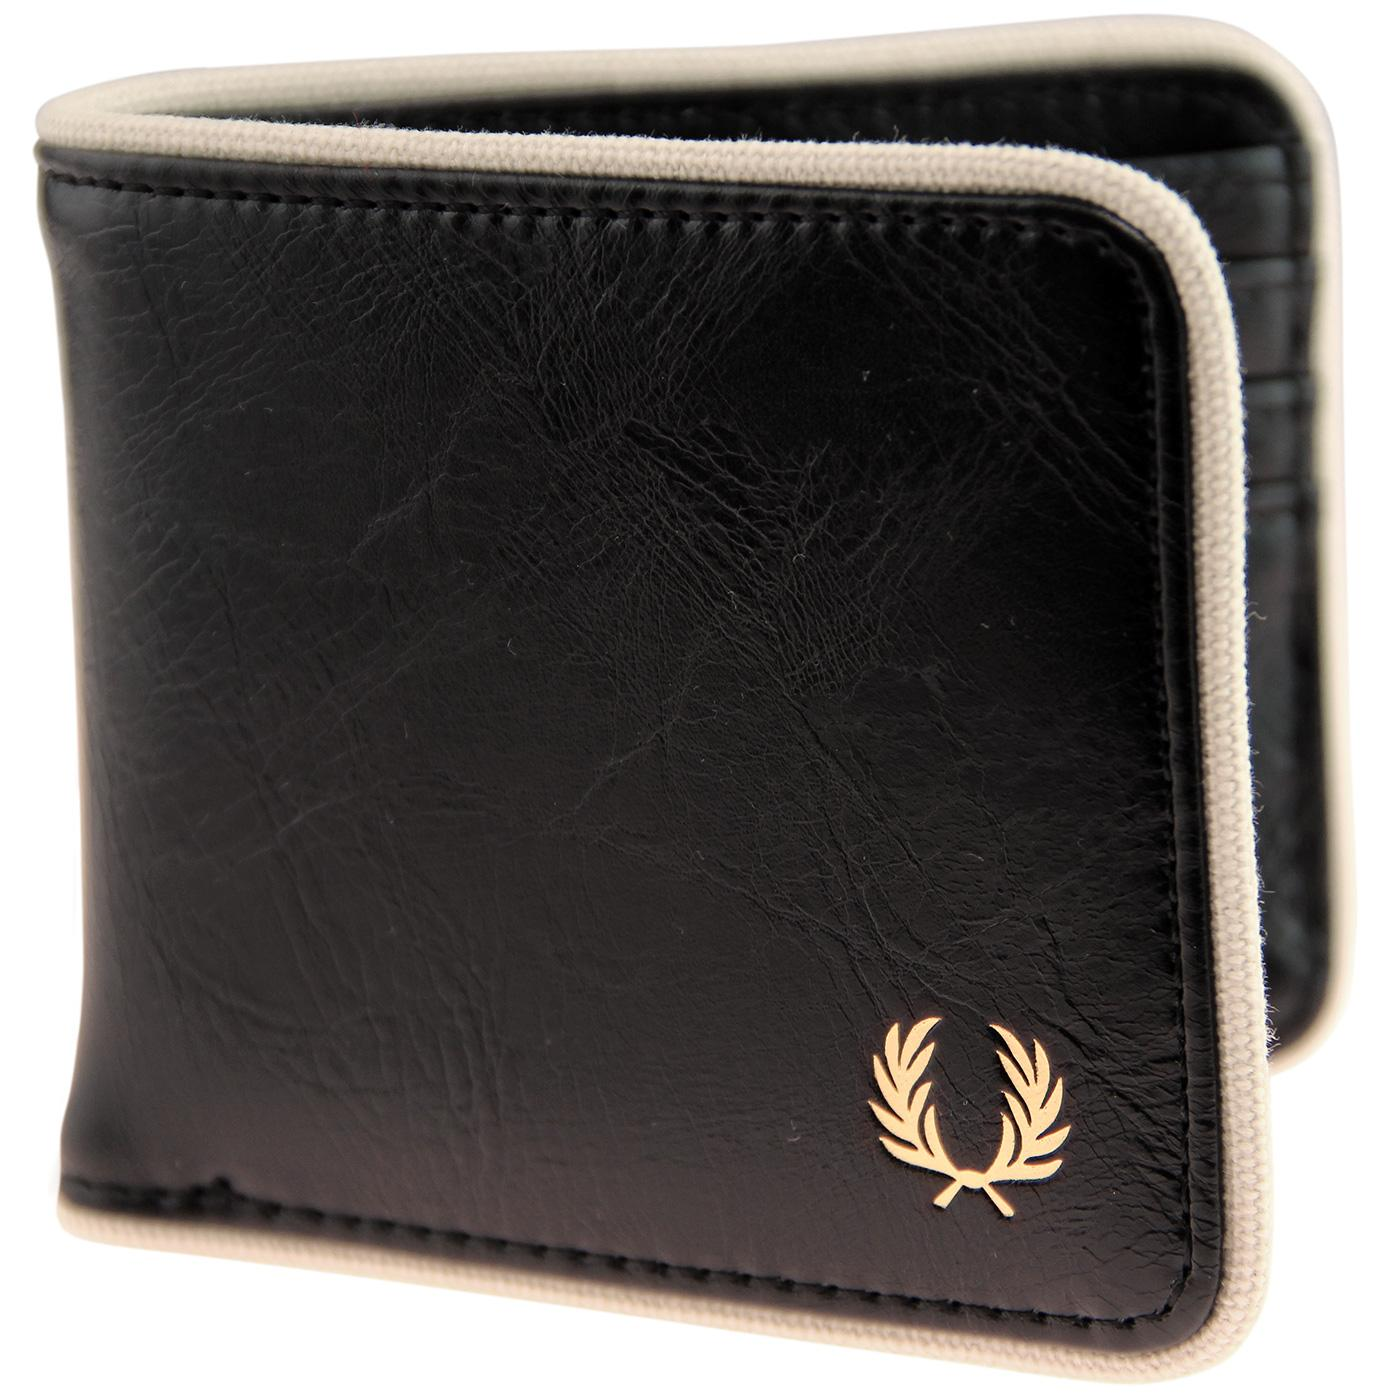 FRED PERRY Classic Billfold Logo Wallet - Black